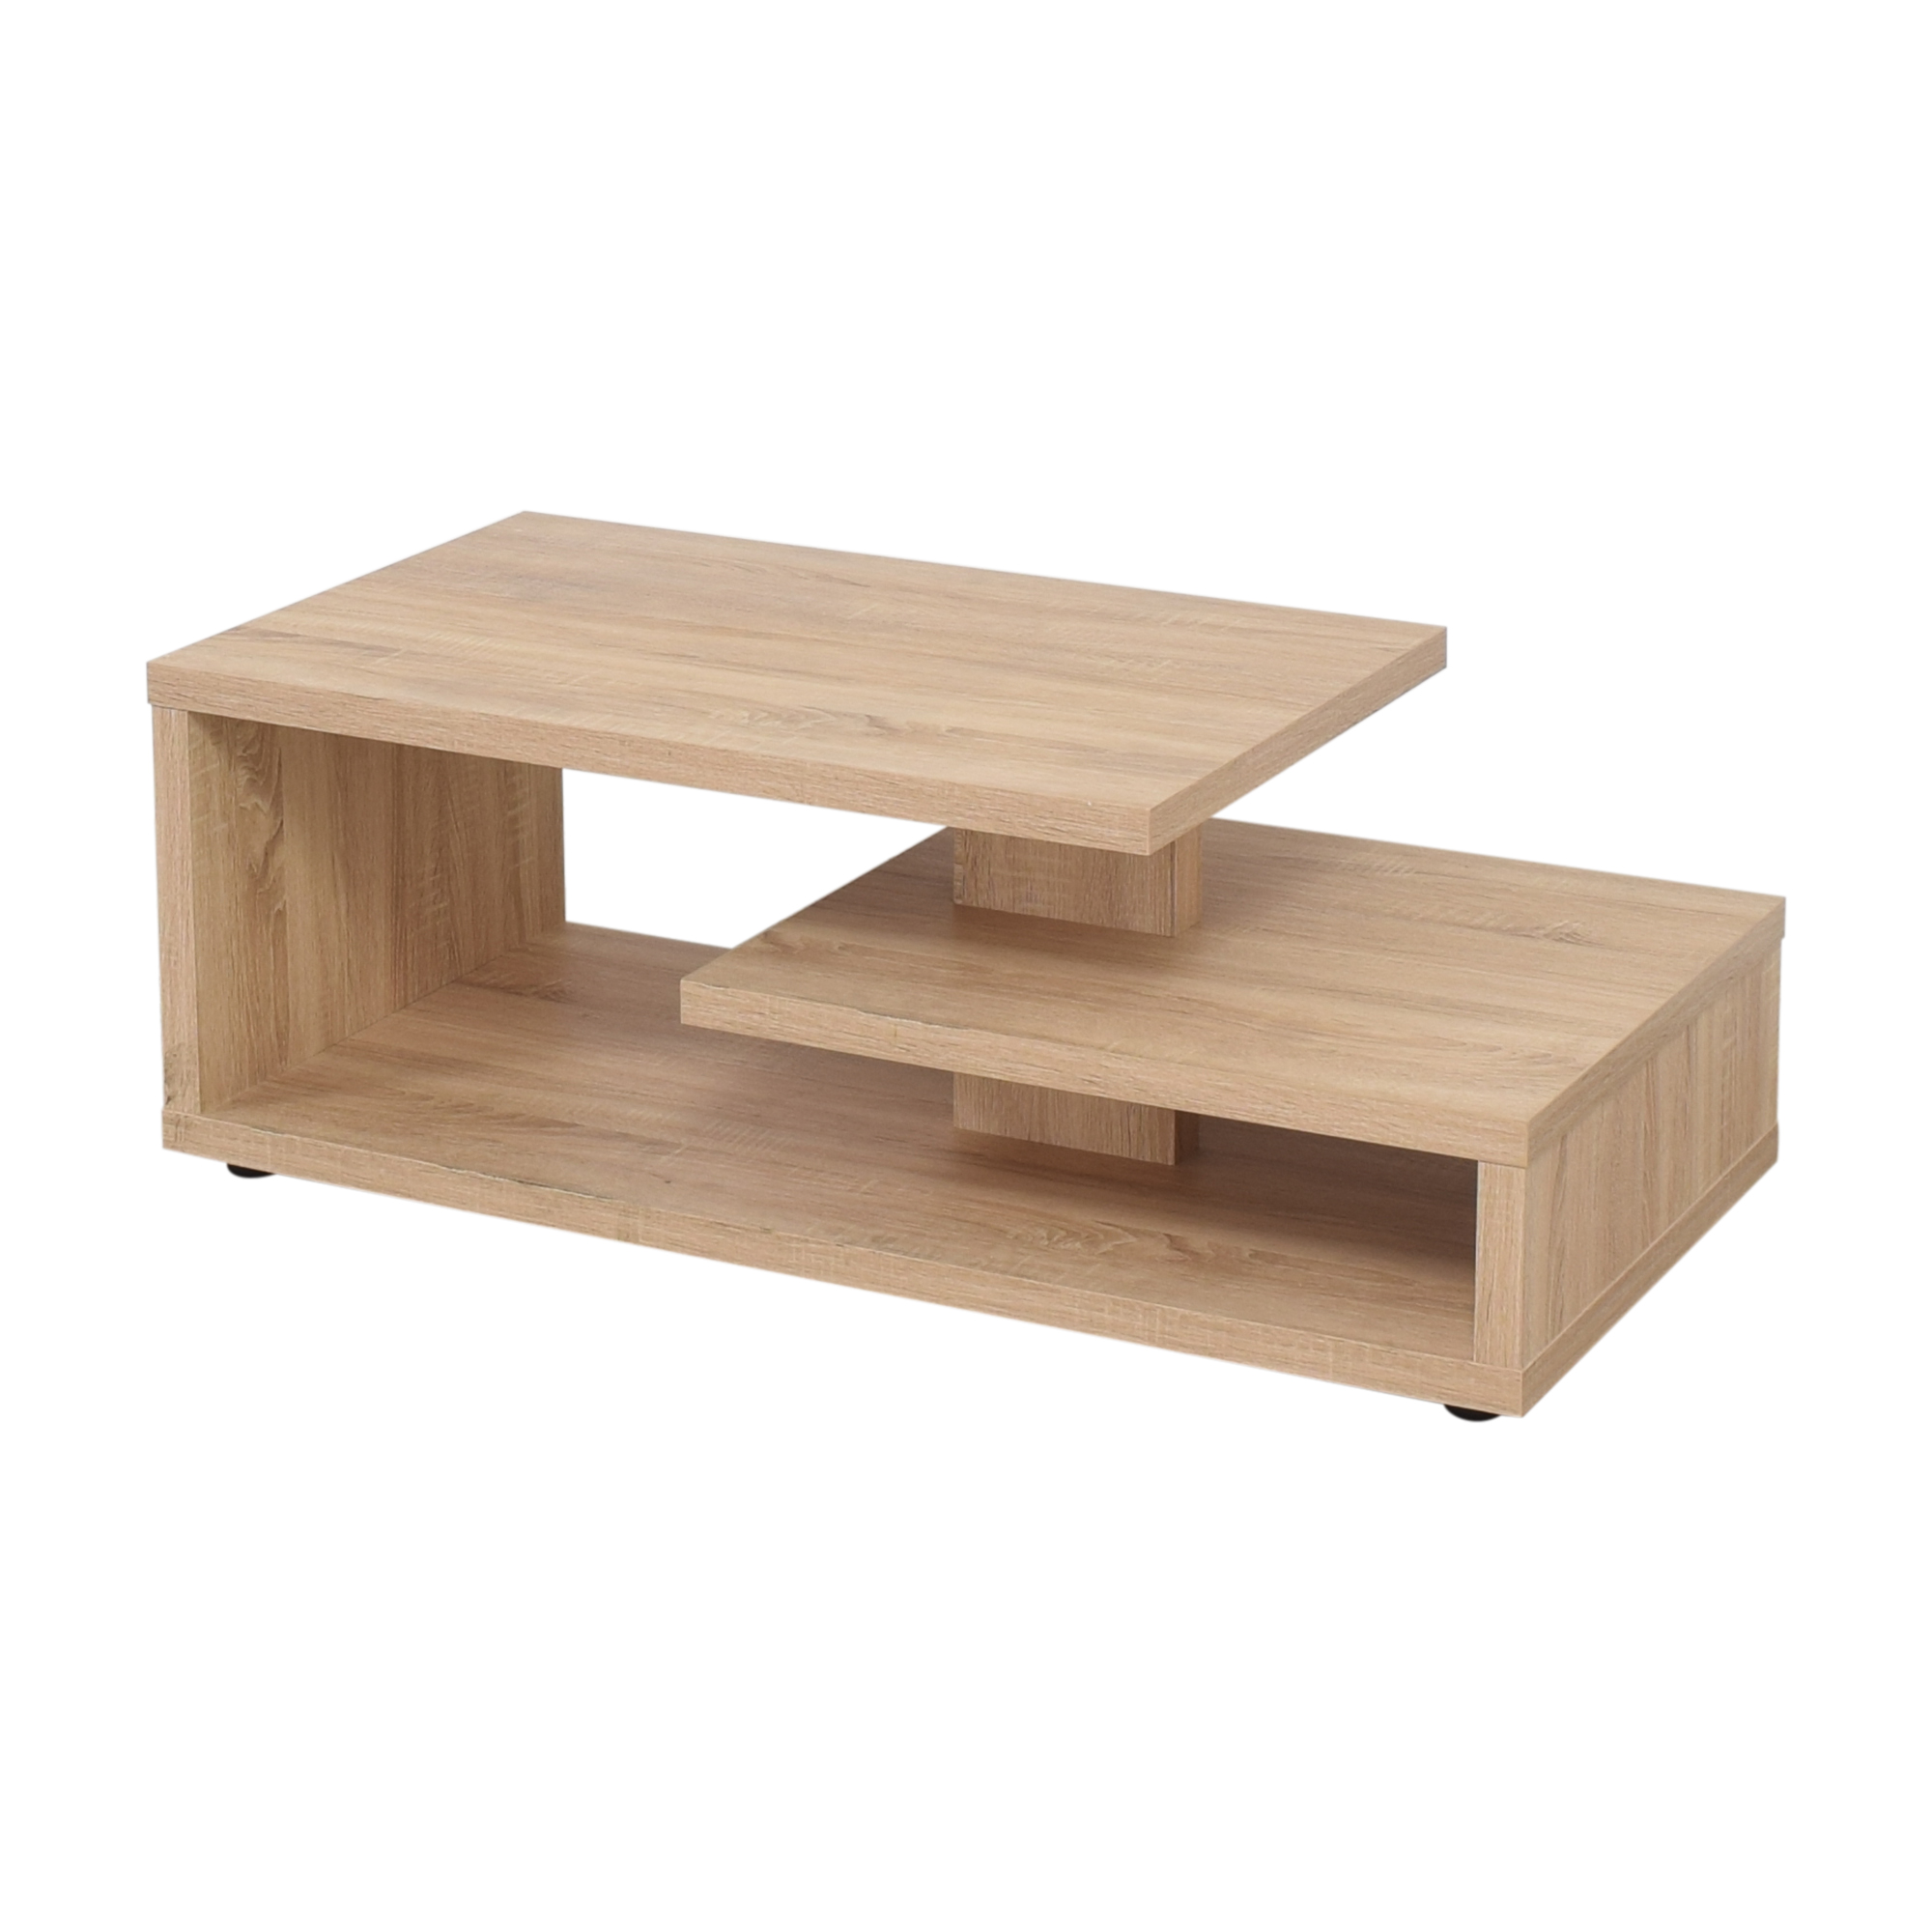 43 off west elm west elm modern coffee table tables